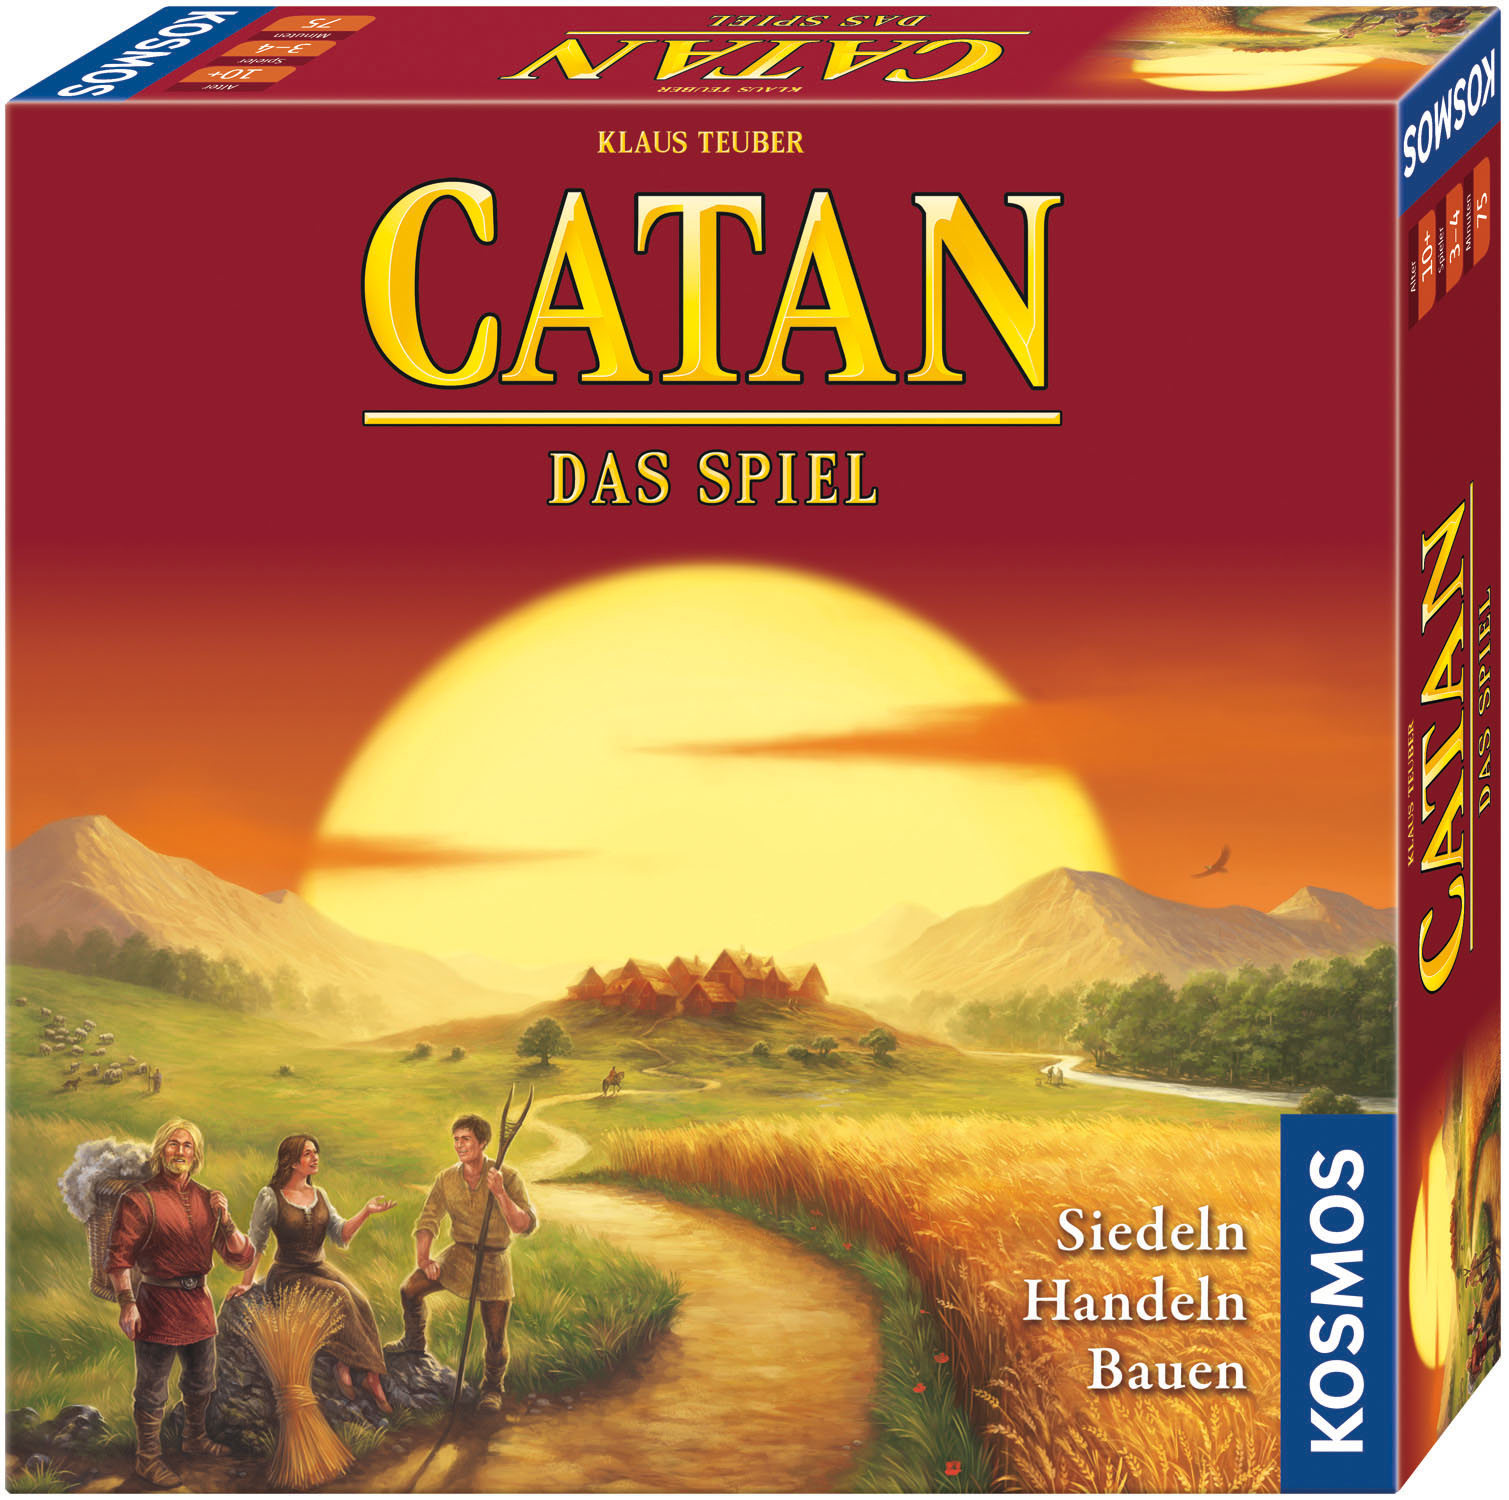 CATAN aktuelle Version Copyright KOSMOS